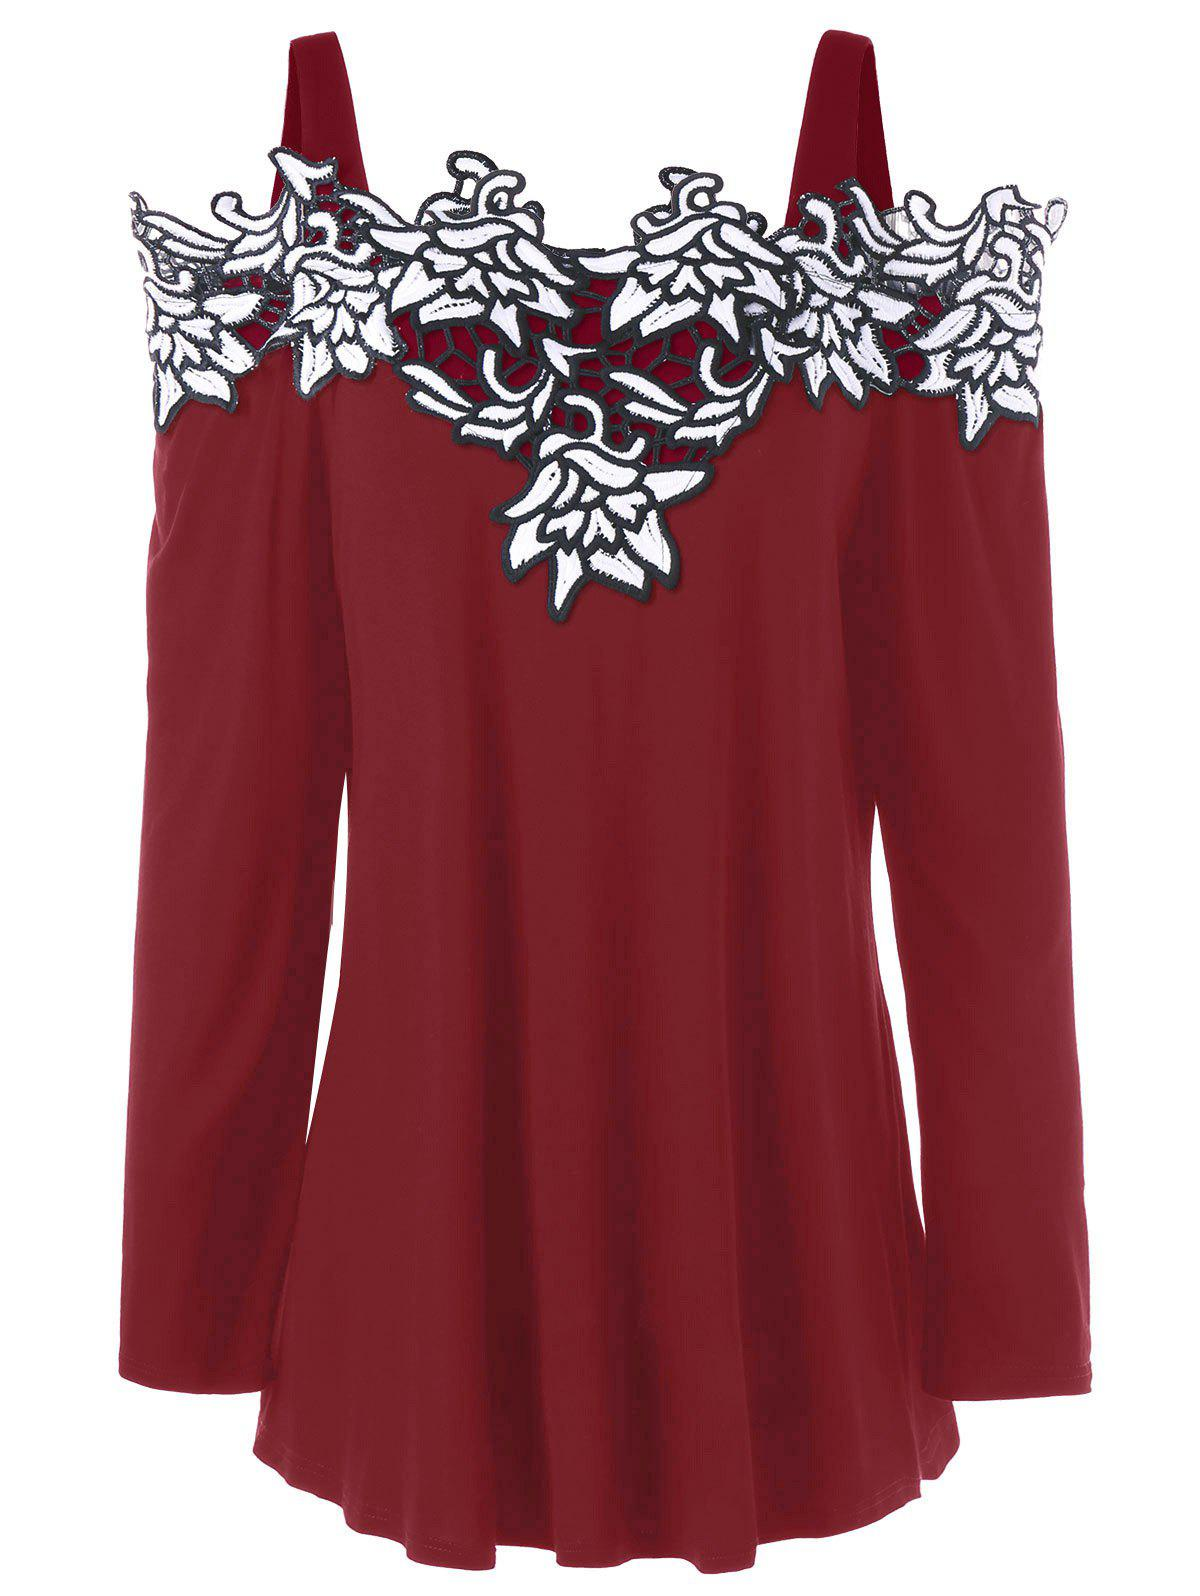 Plus Size Cold Shoulder Embroidered Long Sleeve T-shirtWOMEN<br><br>Size: 3XL; Color: RED; Material: Cotton,Polyester; Shirt Length: Regular; Sleeve Length: Full; Collar: Spaghetti Strap; Style: Fashion; Season: Fall,Spring; Embellishment: Embroidery; Pattern Type: Floral; Weight: 0.3000kg; Package Contents: 1 x T-shirt;